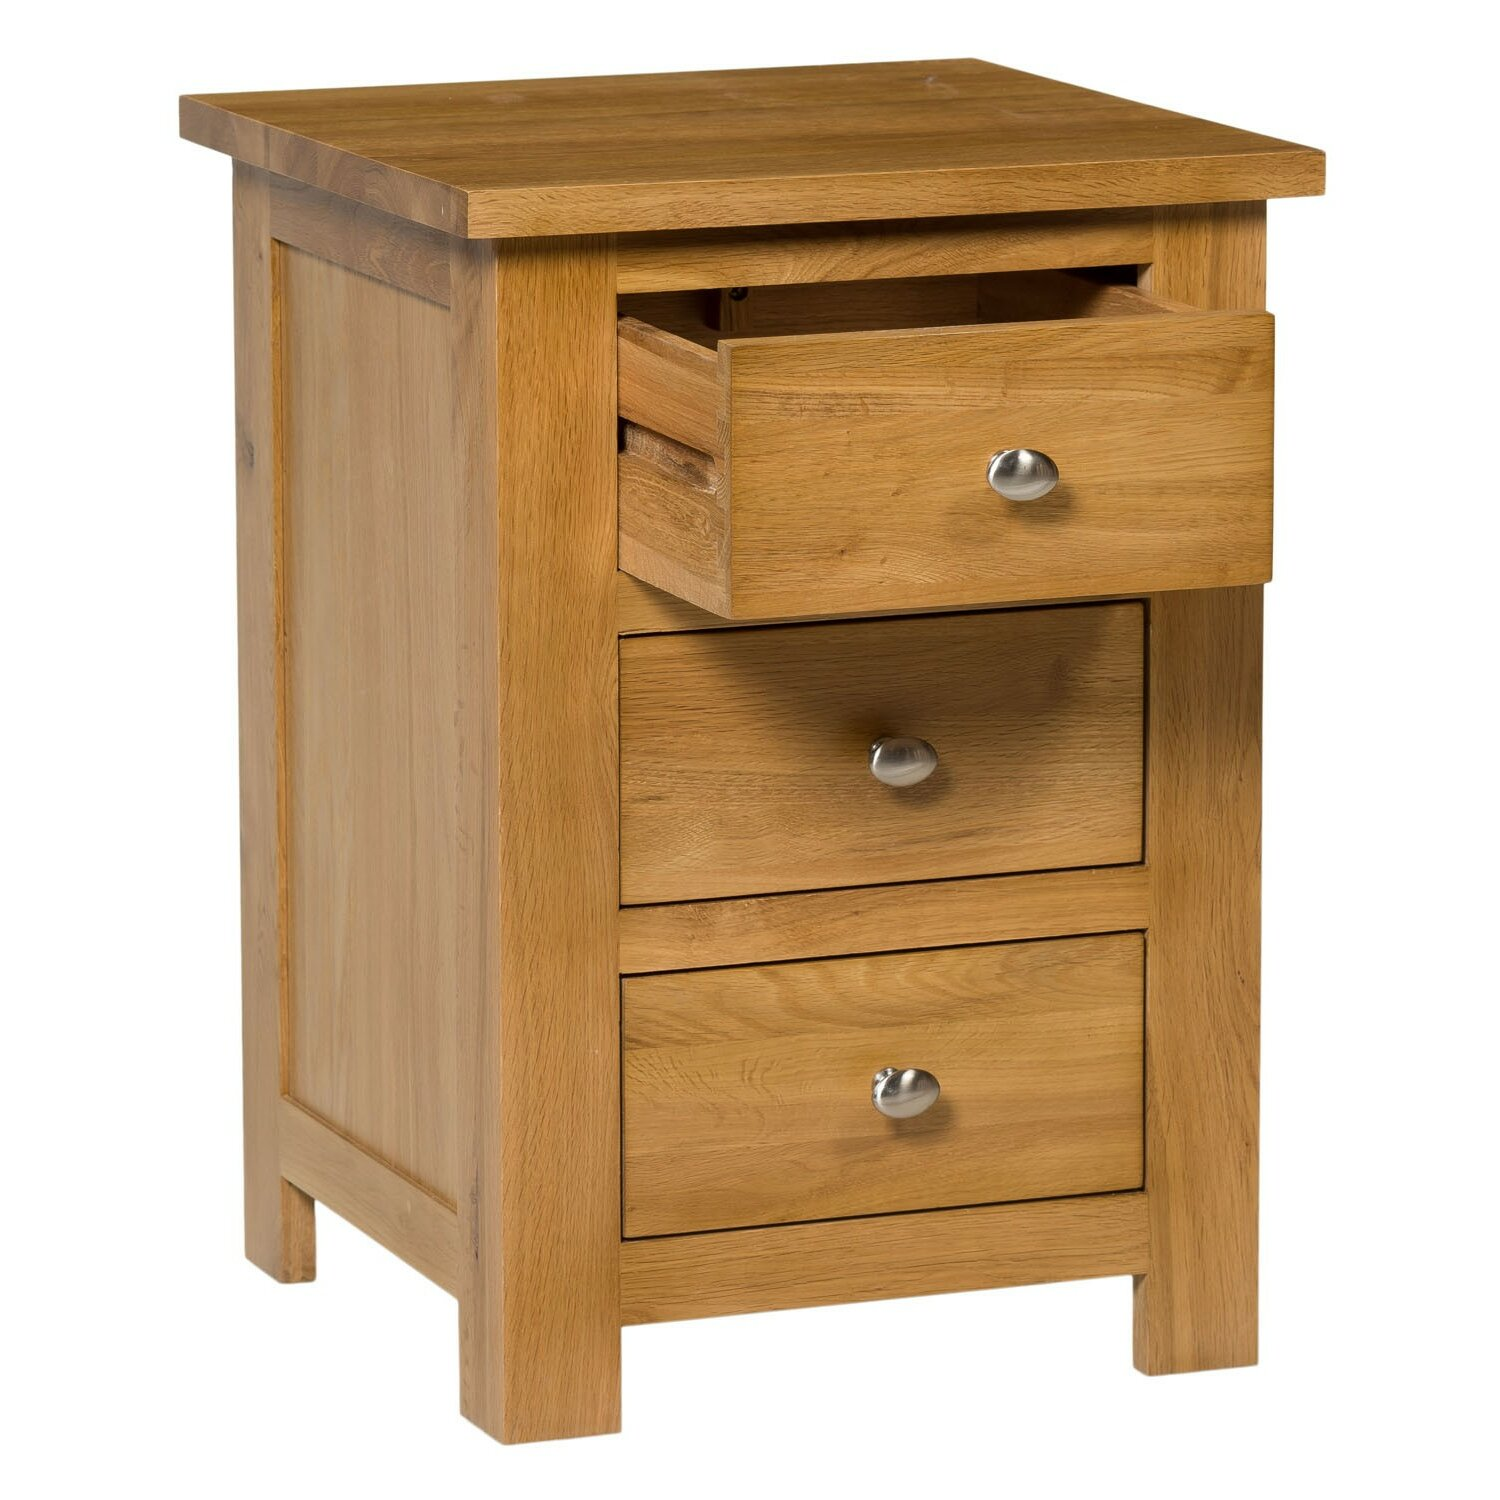 hallowood furniture new waverly 3 drawer bedside table. Black Bedroom Furniture Sets. Home Design Ideas